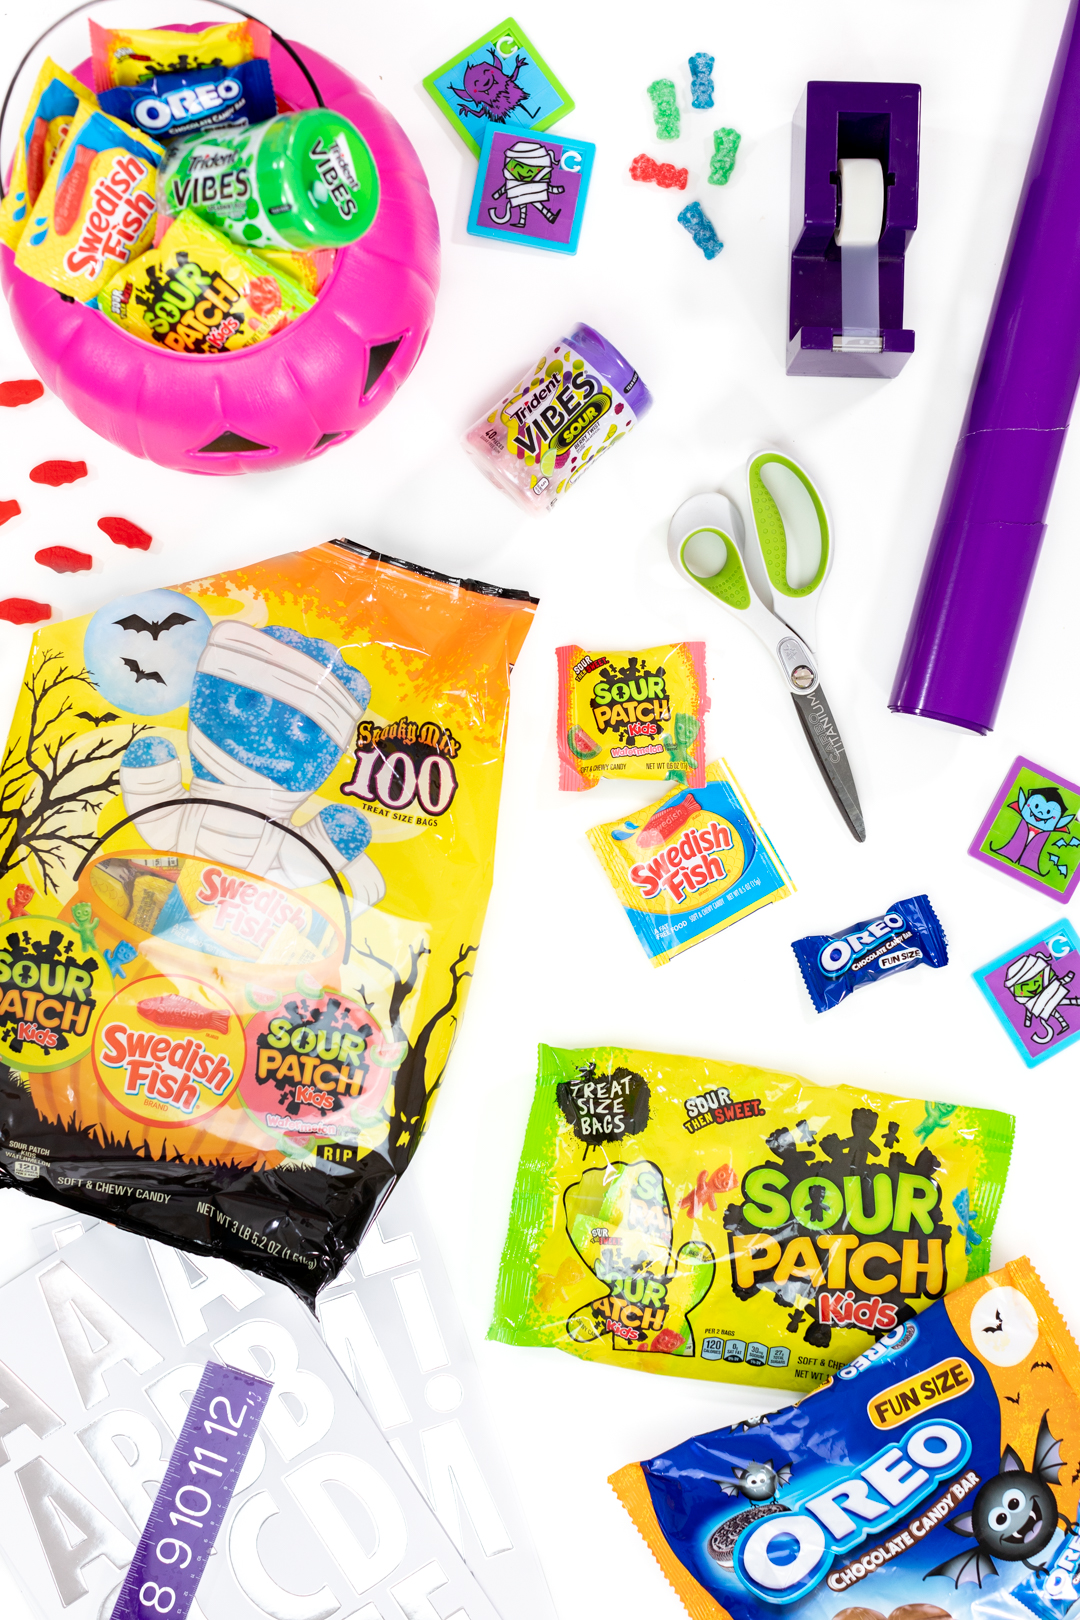 items and candy needed to make surprise halloween boxes for friends